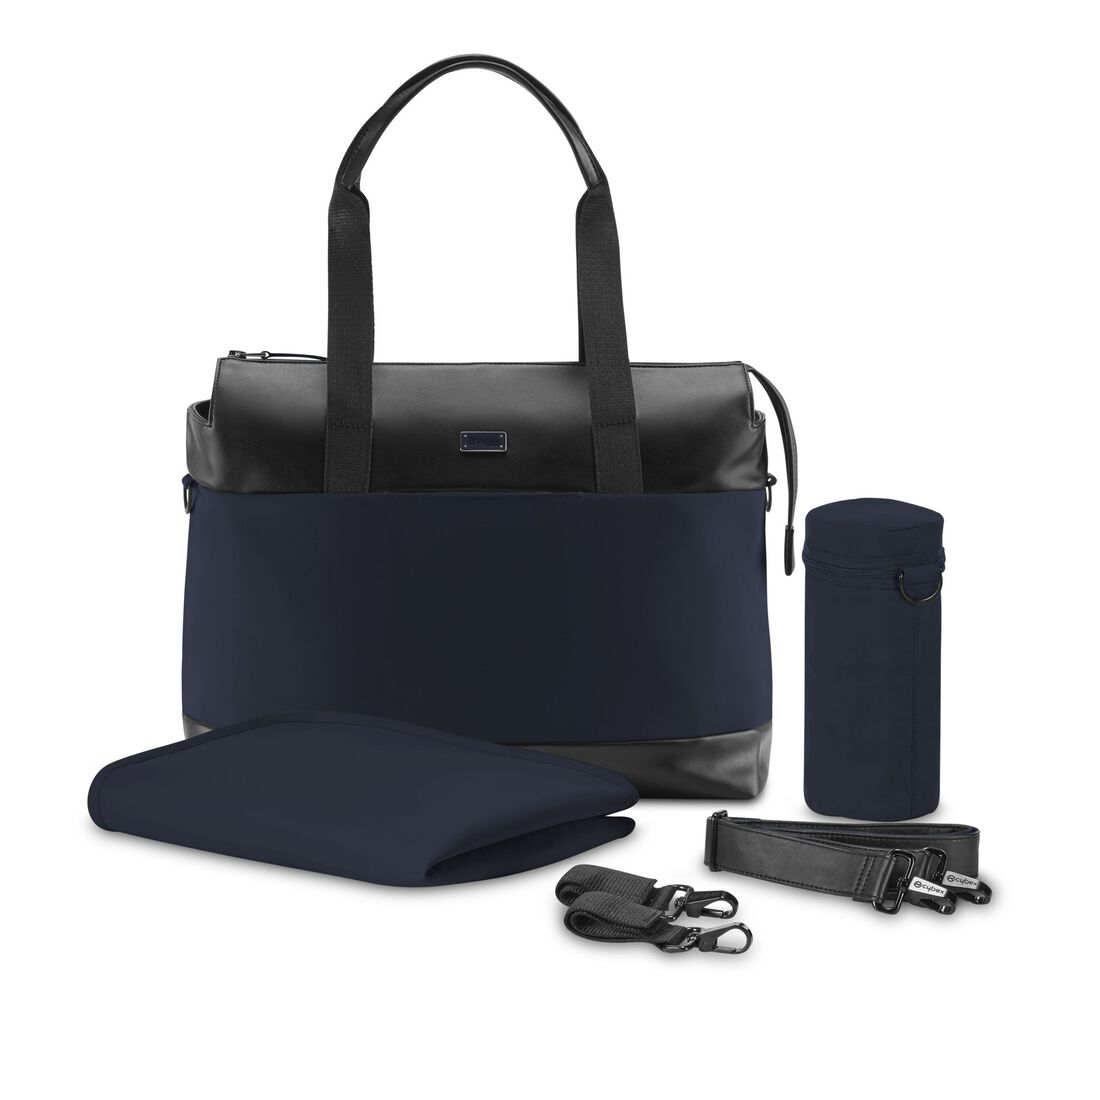 CYBEX Mios Changing Bag - Nautical Blue in Nautical Blue large image number 2